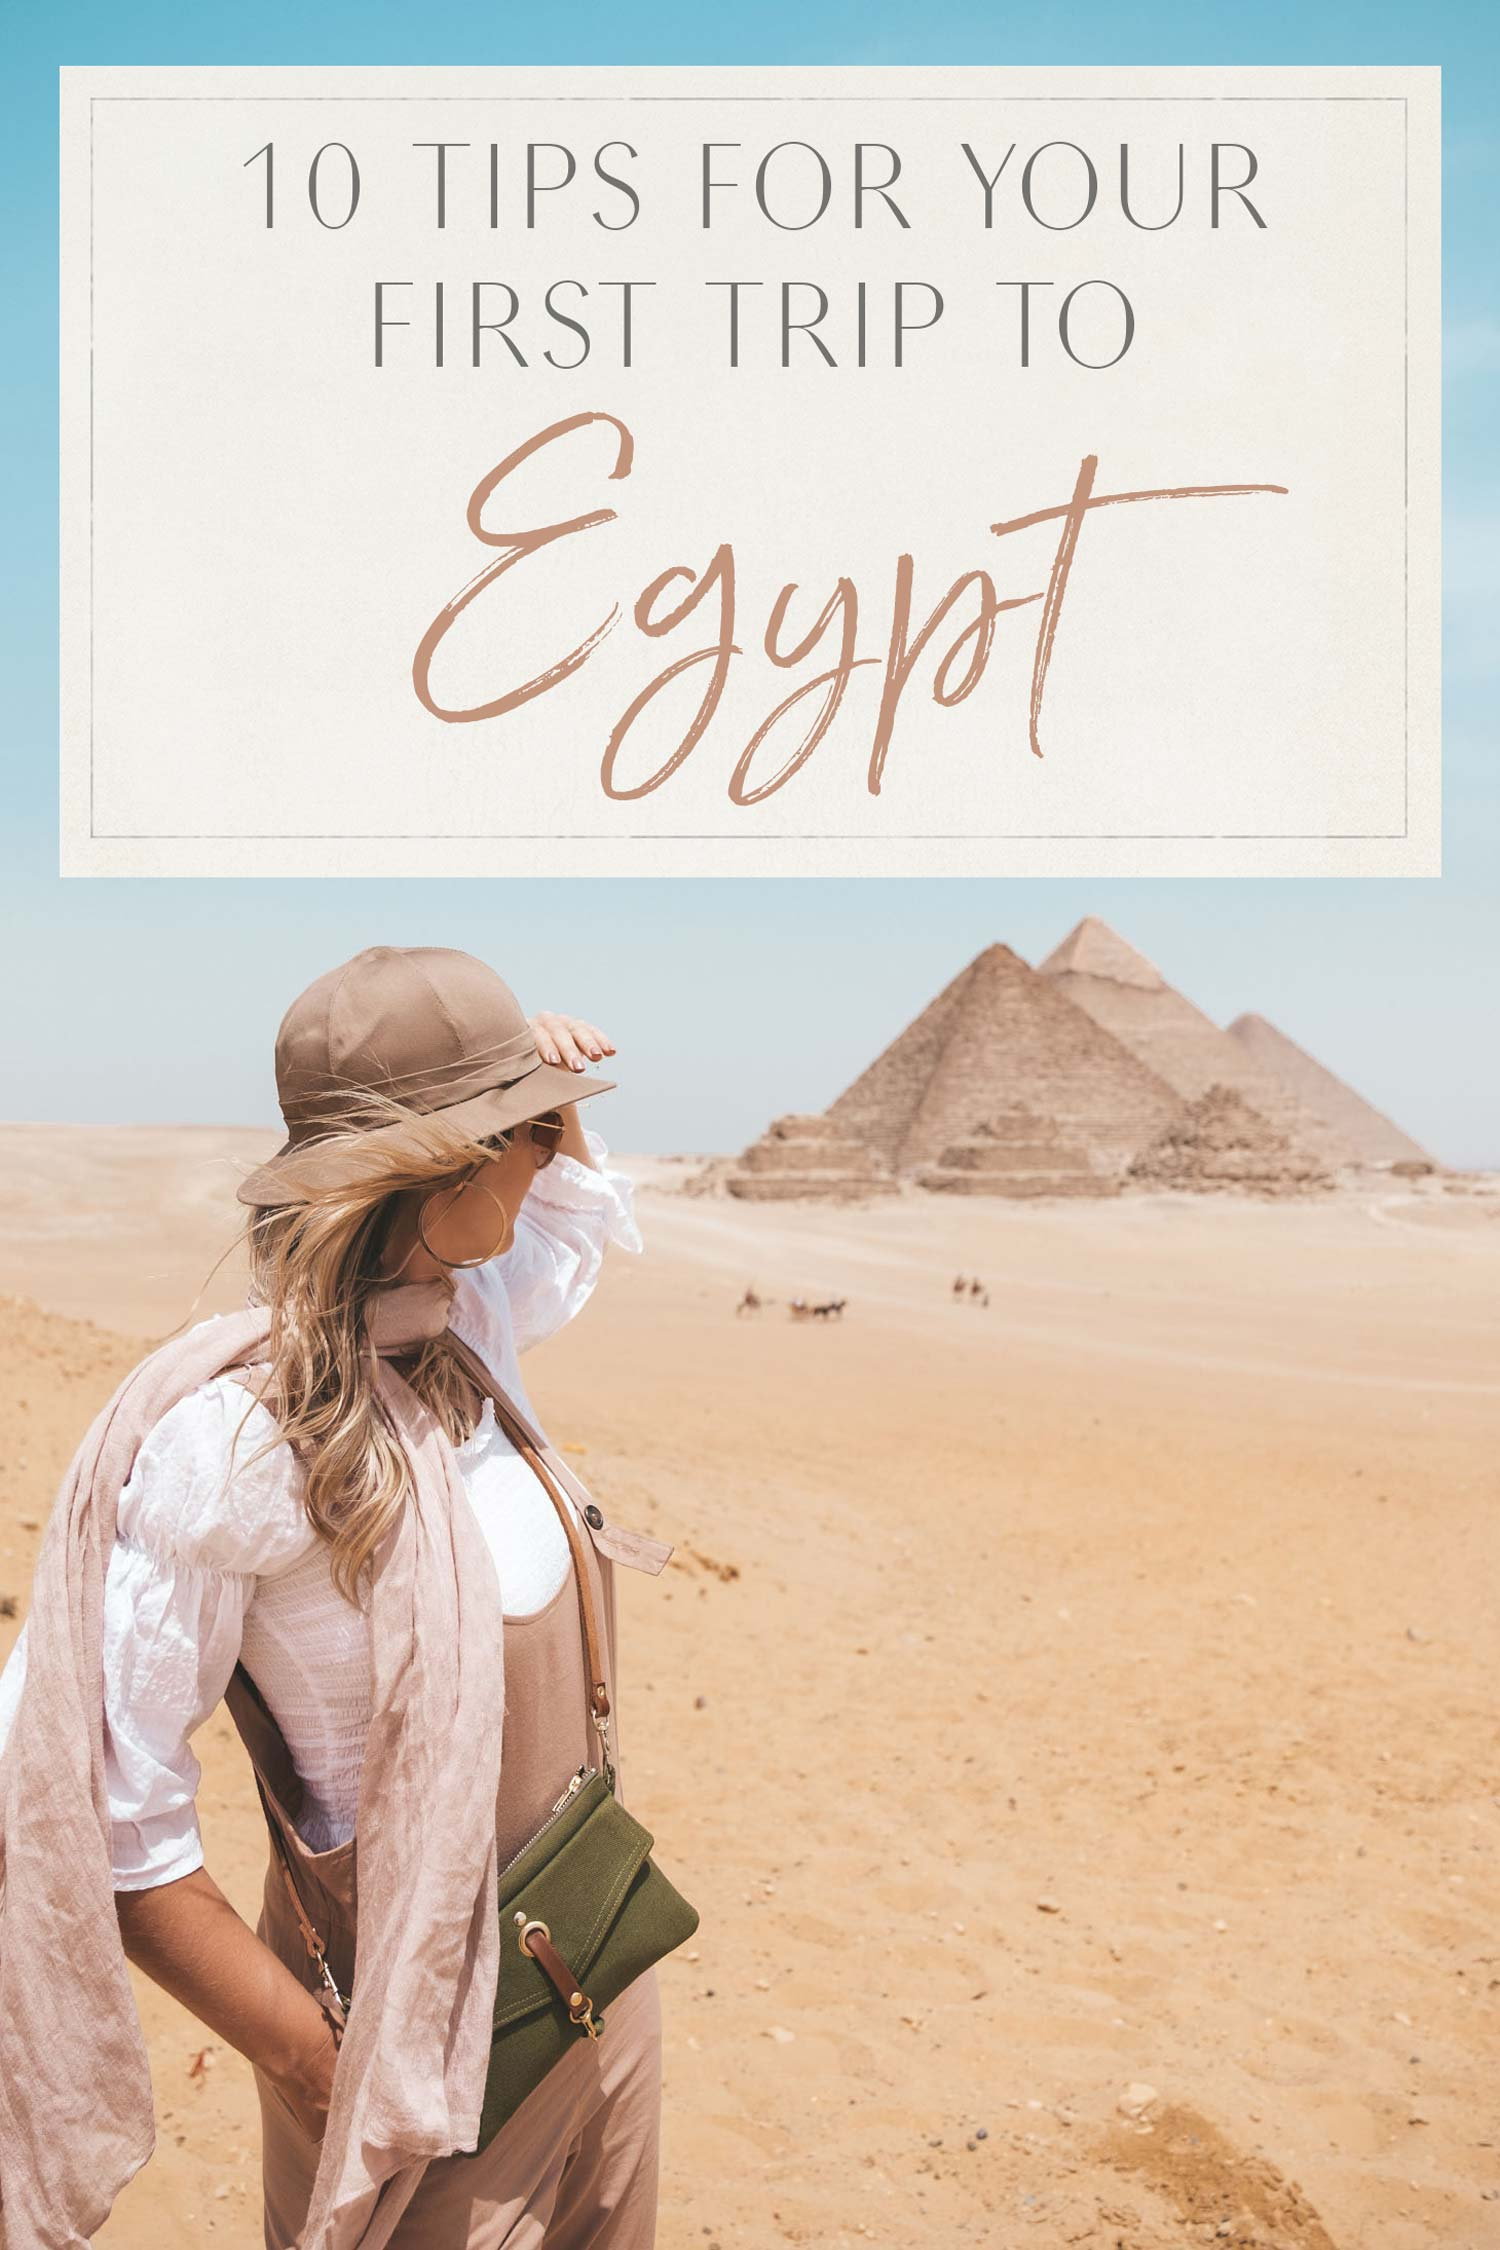 10 Tips for Your First Trip to Egypt • The Blonde Abroad -  10 Tips for Your First Trip to Egypt • The Blonde Abroad  - #abroad #BeautifulCelebrities #blonde #Egypt #Film #first #Museums #Tips #Trip